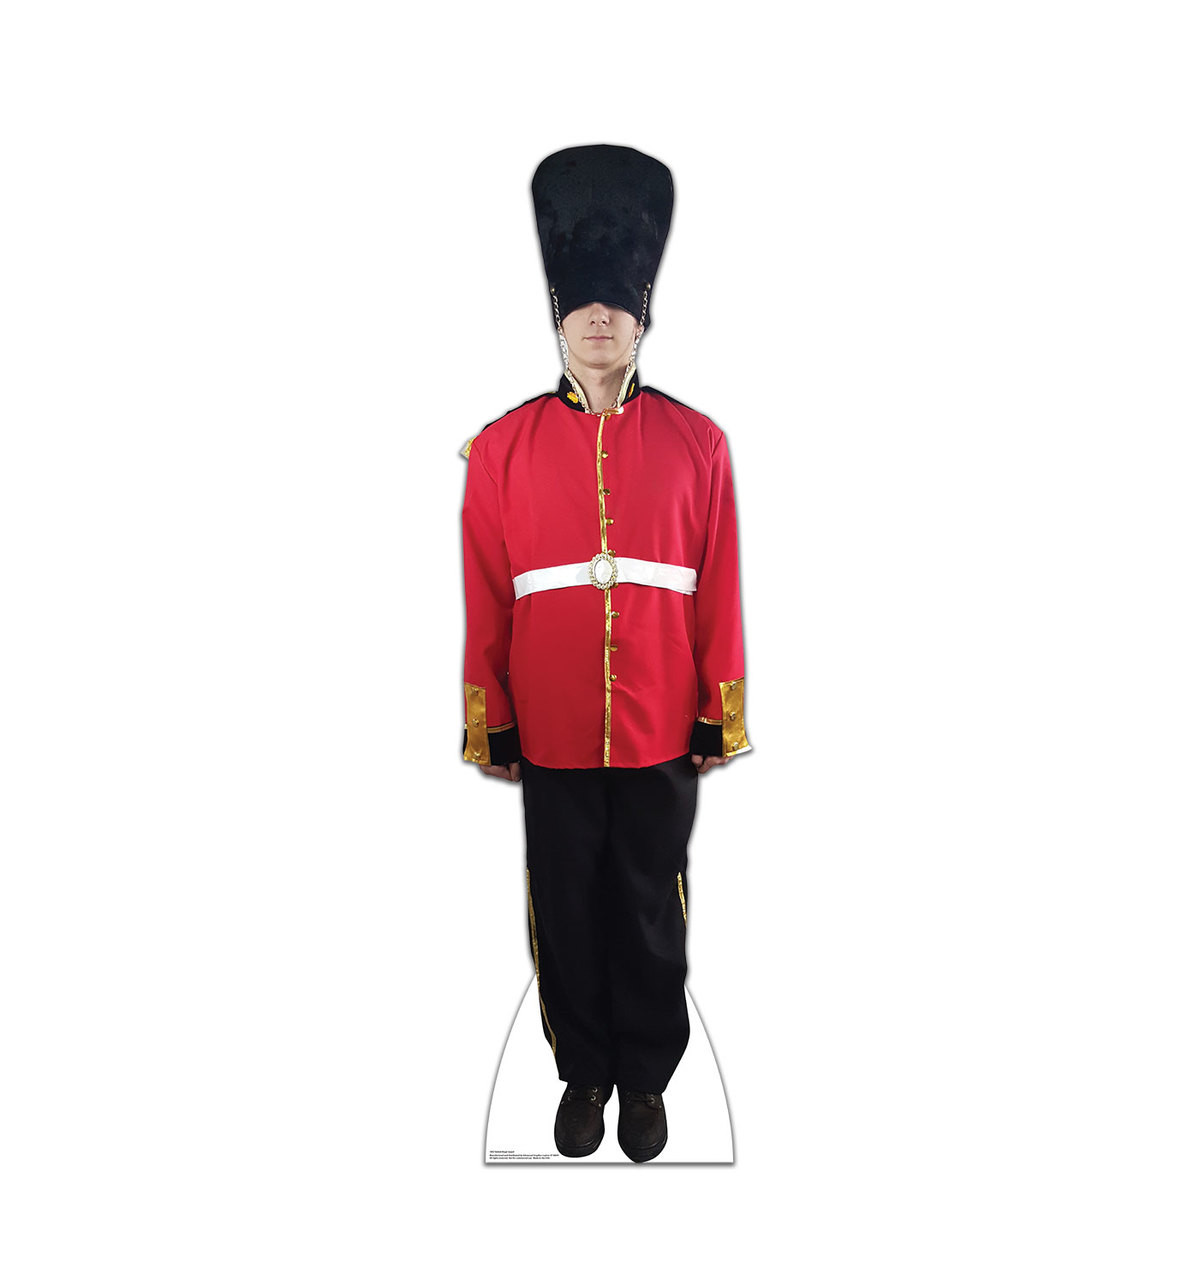 Life-size British Royal Guard Cardboard Standup 2